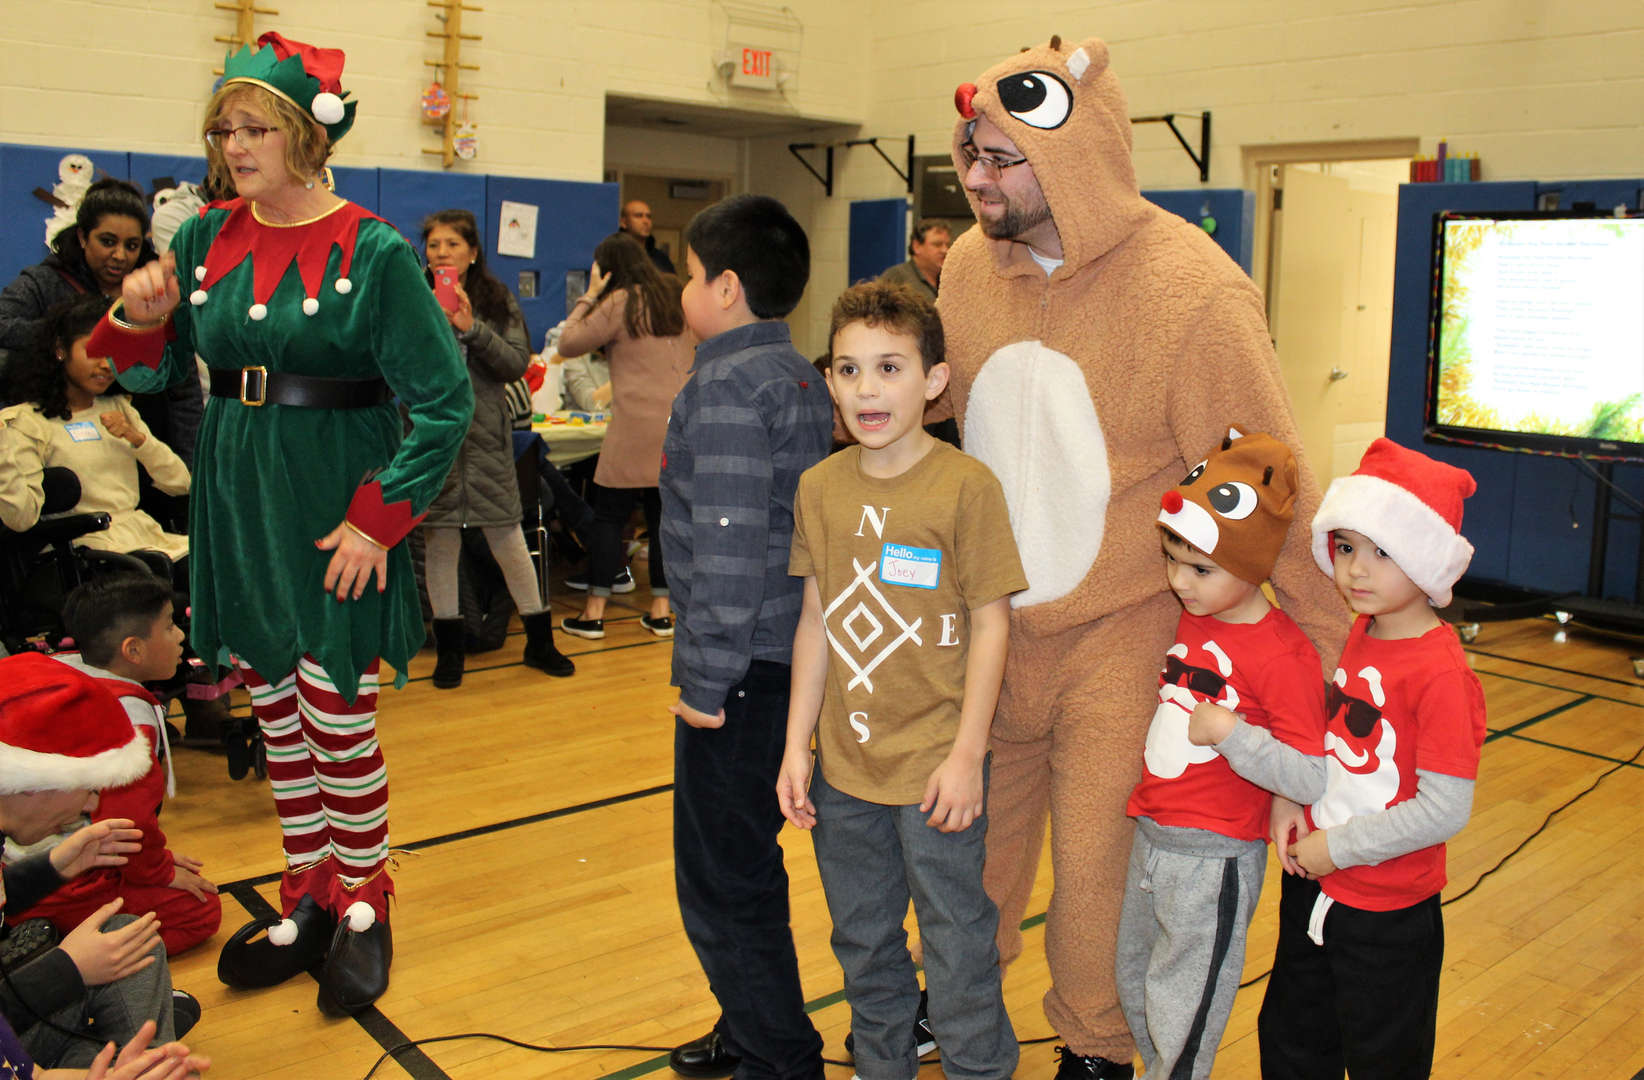 Children pose with one of Santa's elves and Rudolph the Red-Nosed Reindeer at a holiday party.